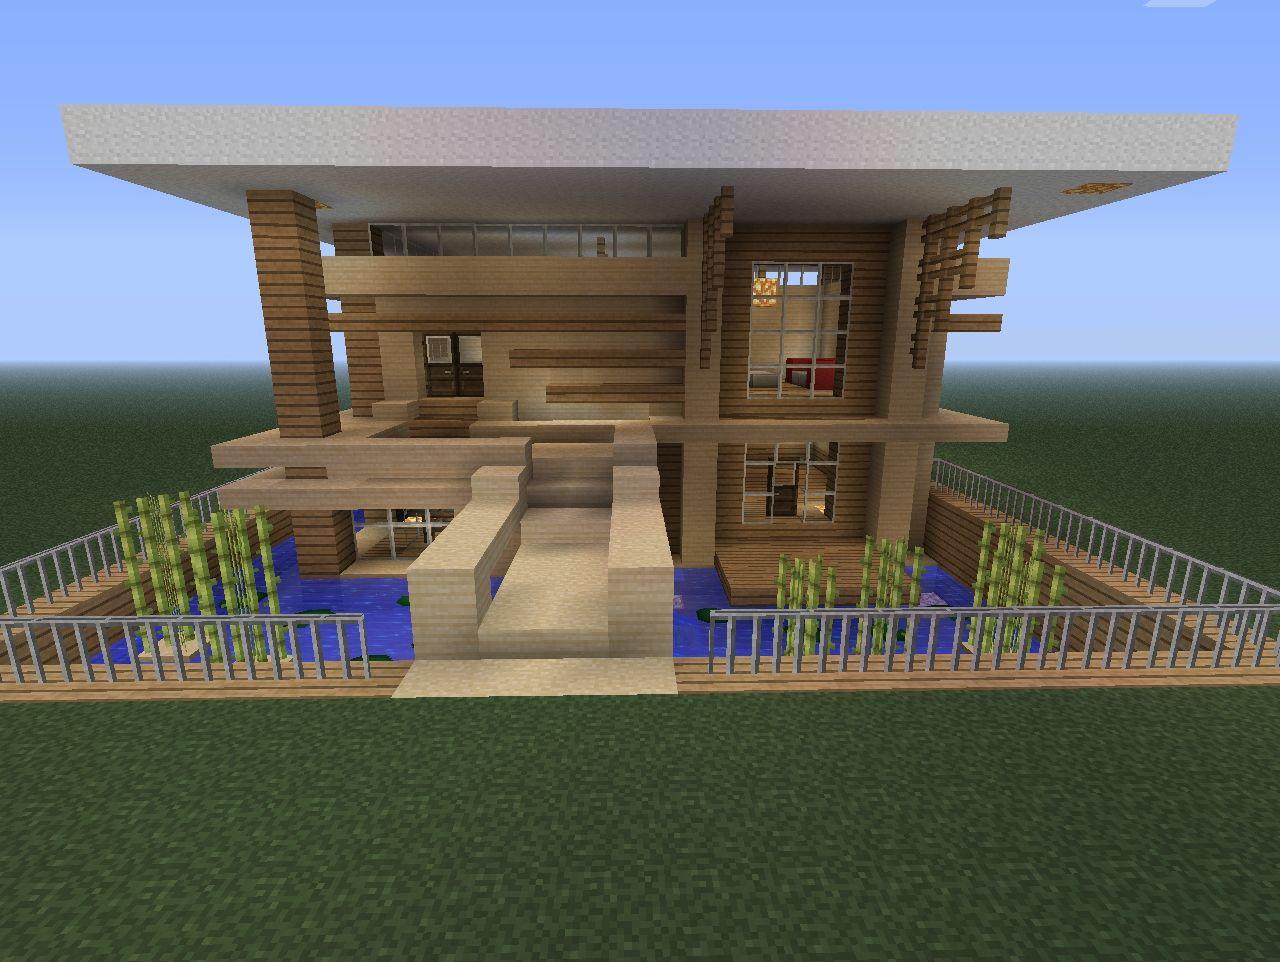 1000 images about minecraft on pinterest minecraft for Minecraft home designs